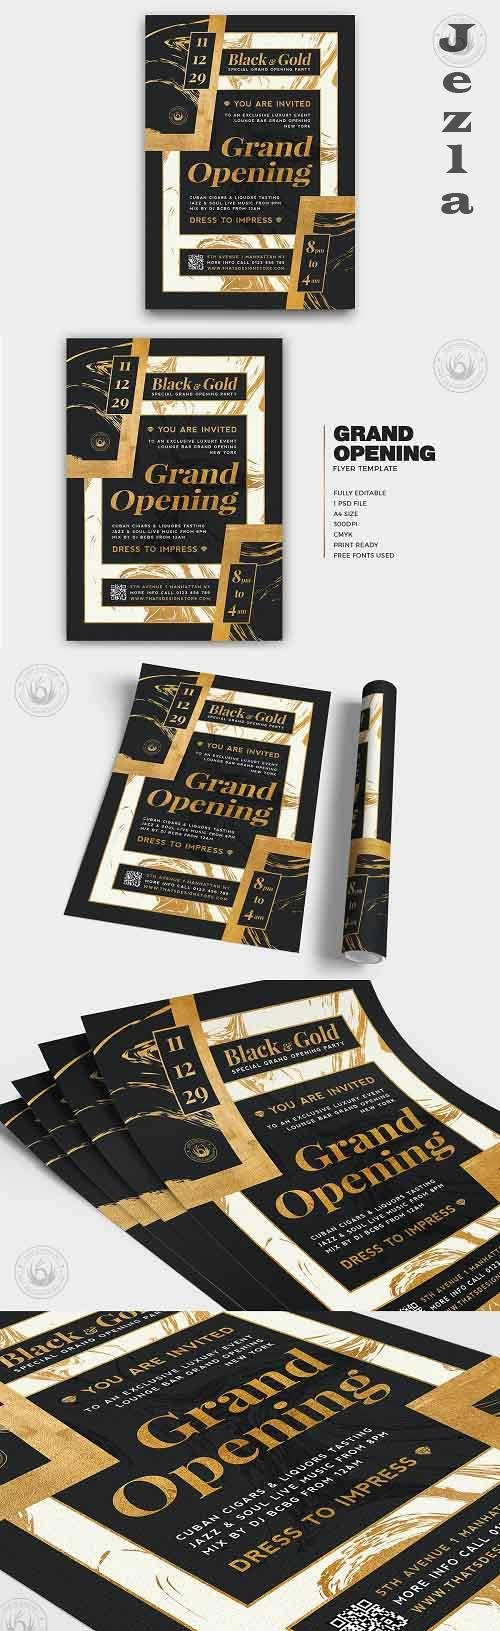 Grand Opening Flyer Template V3 - 5499182